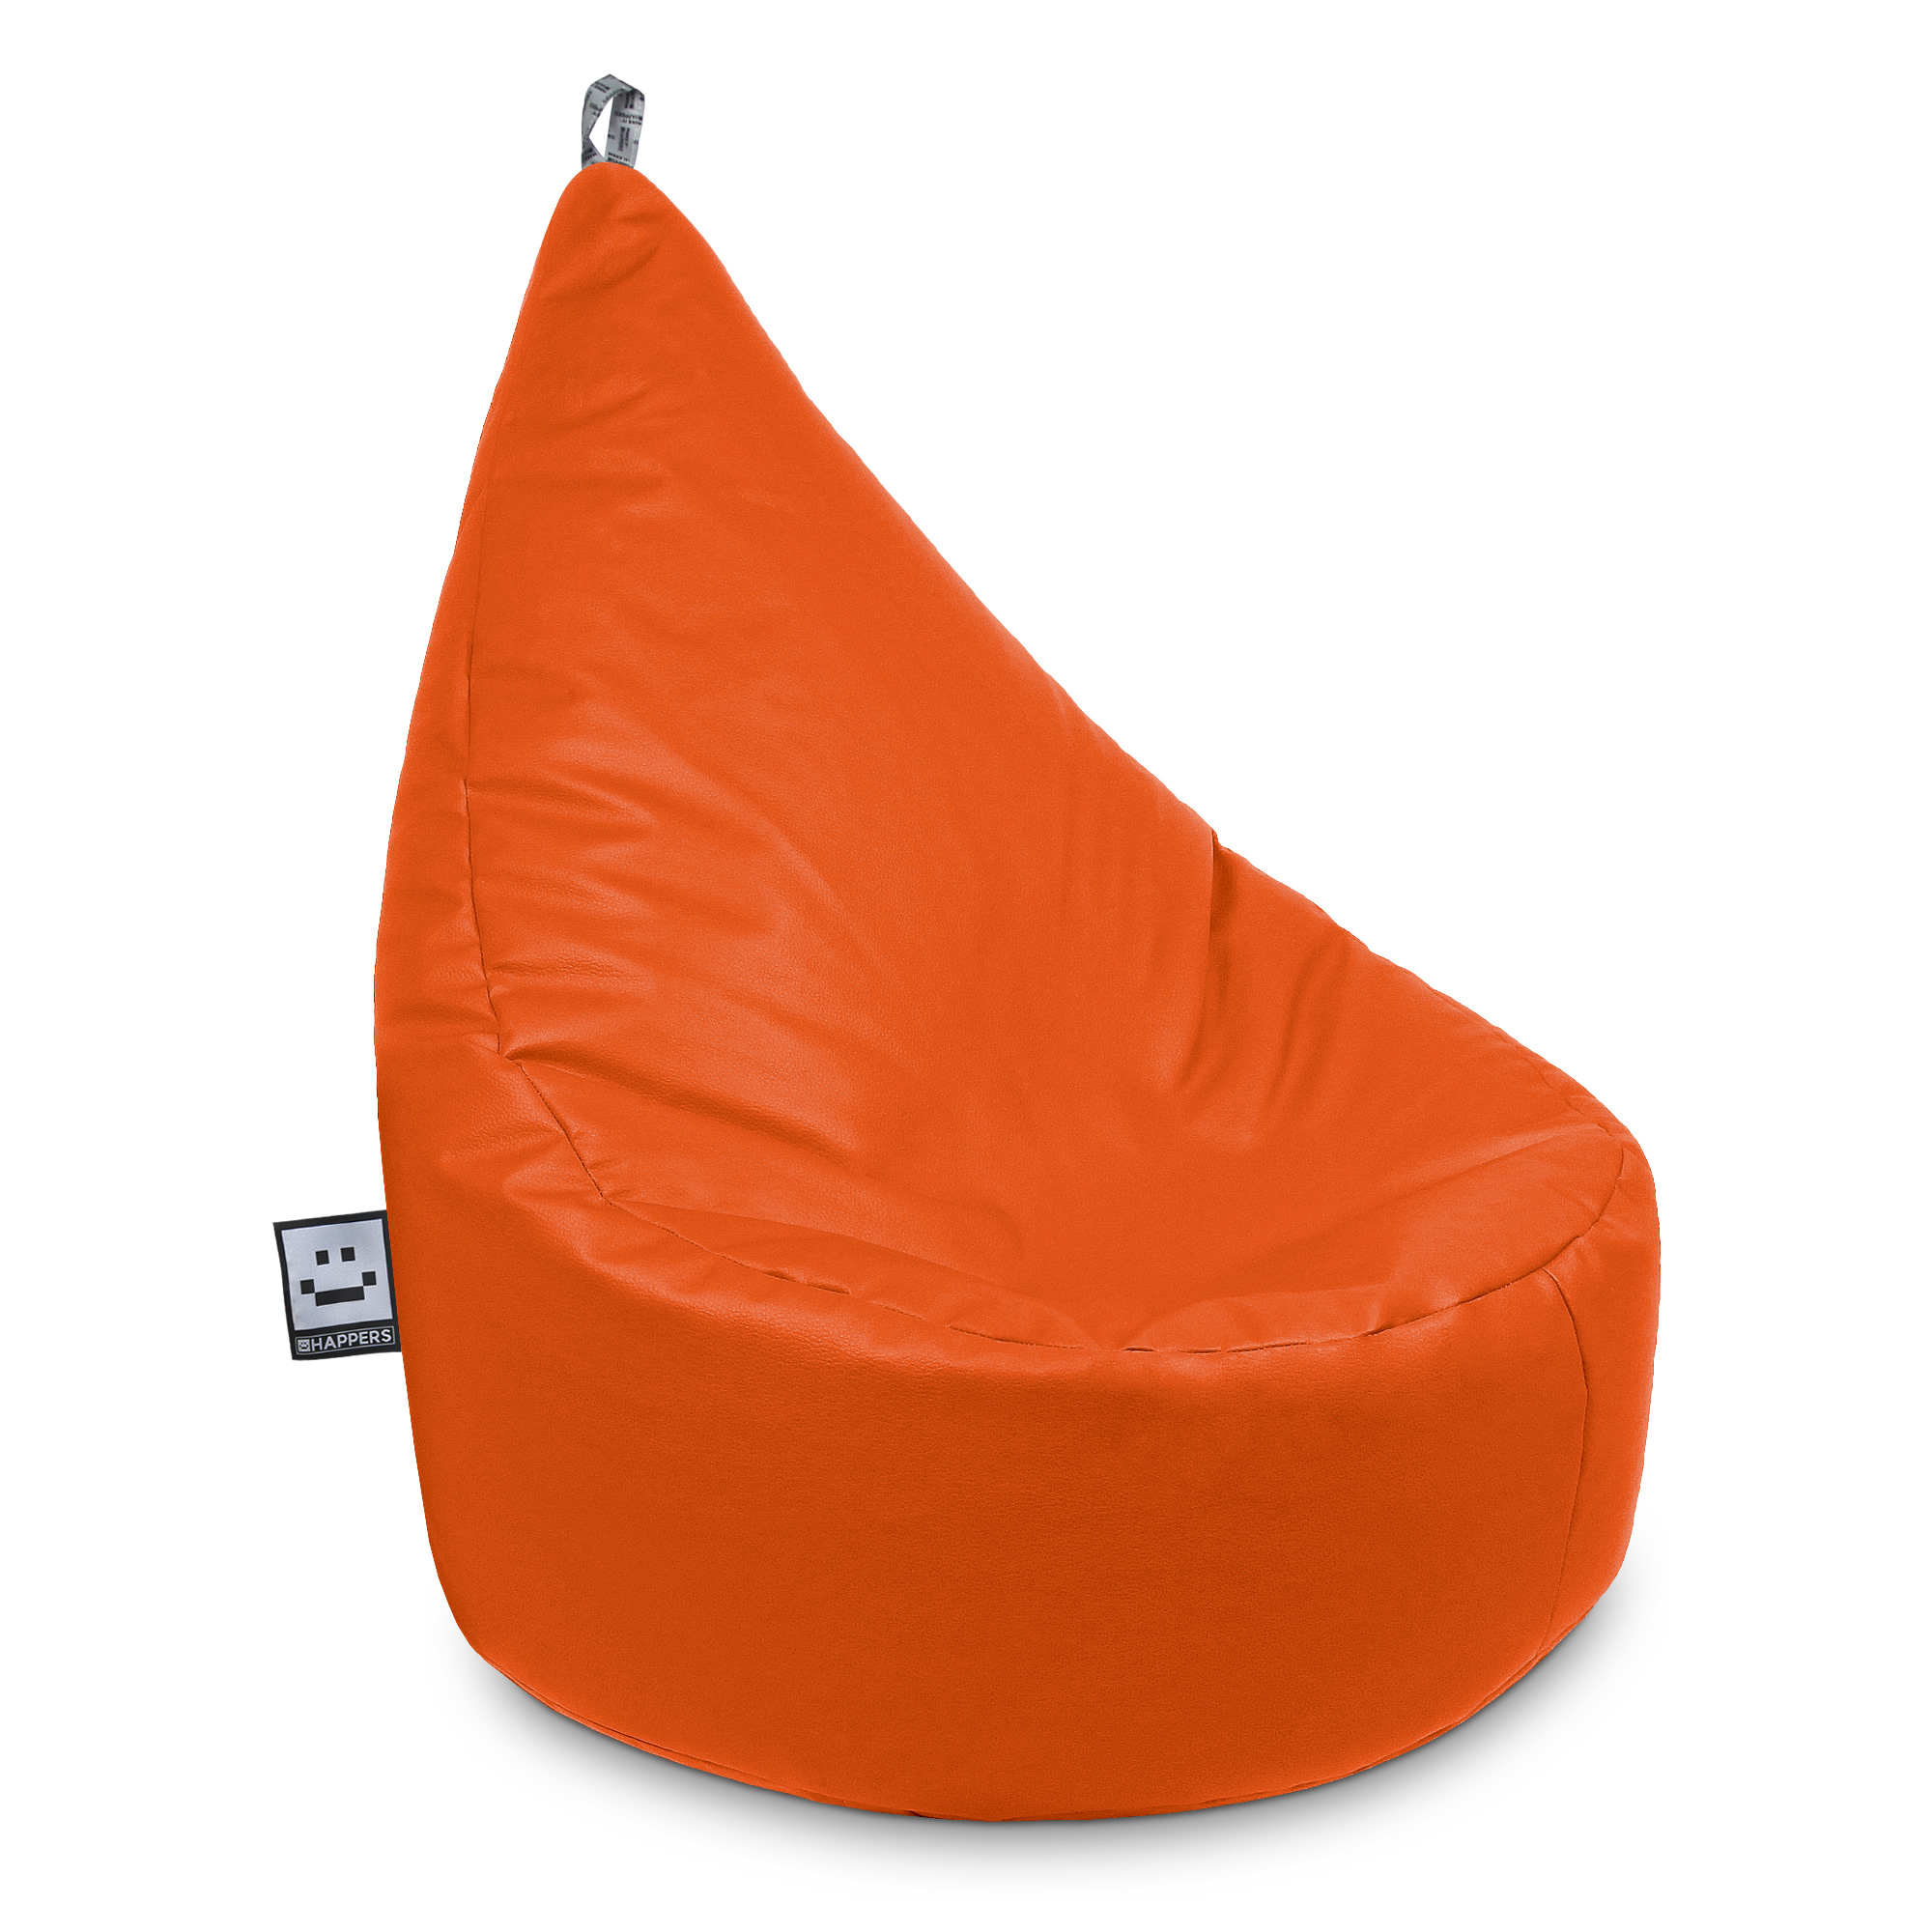 Puff Butaca Polipiel Indoor Naranja XL Happers | Happers.es